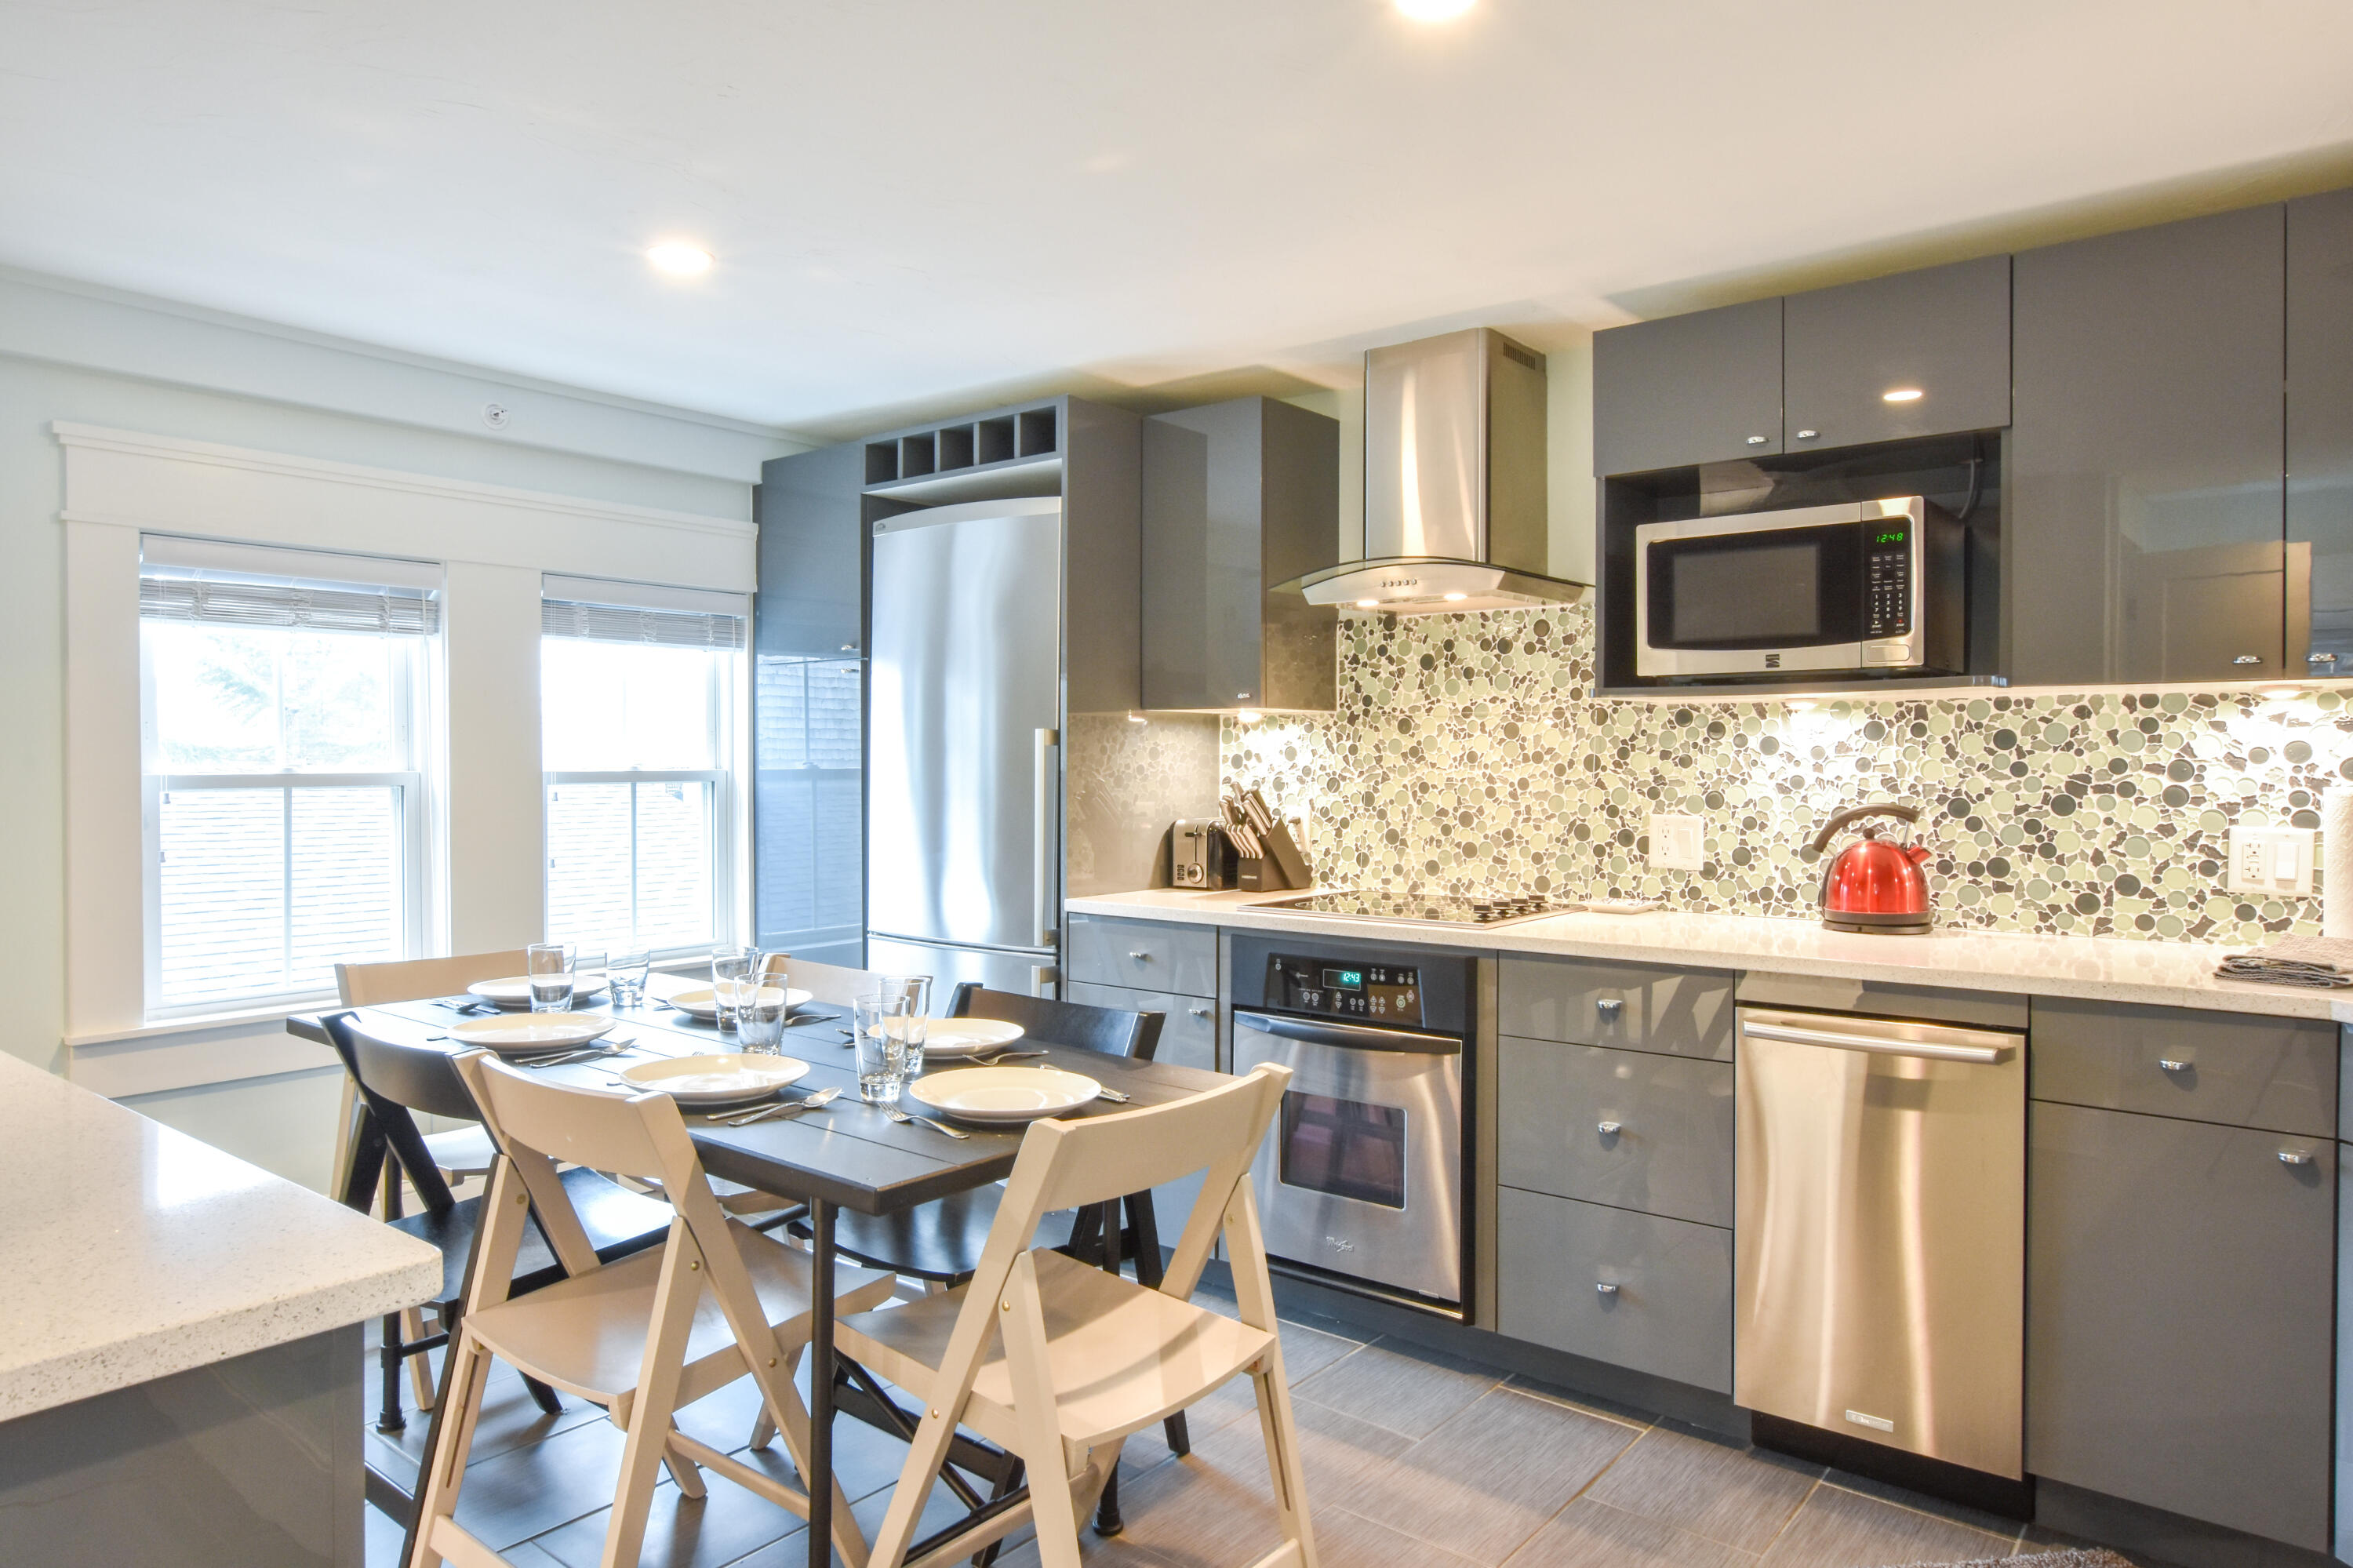 9A Conwell Street 2, Provincetown, MA 02657